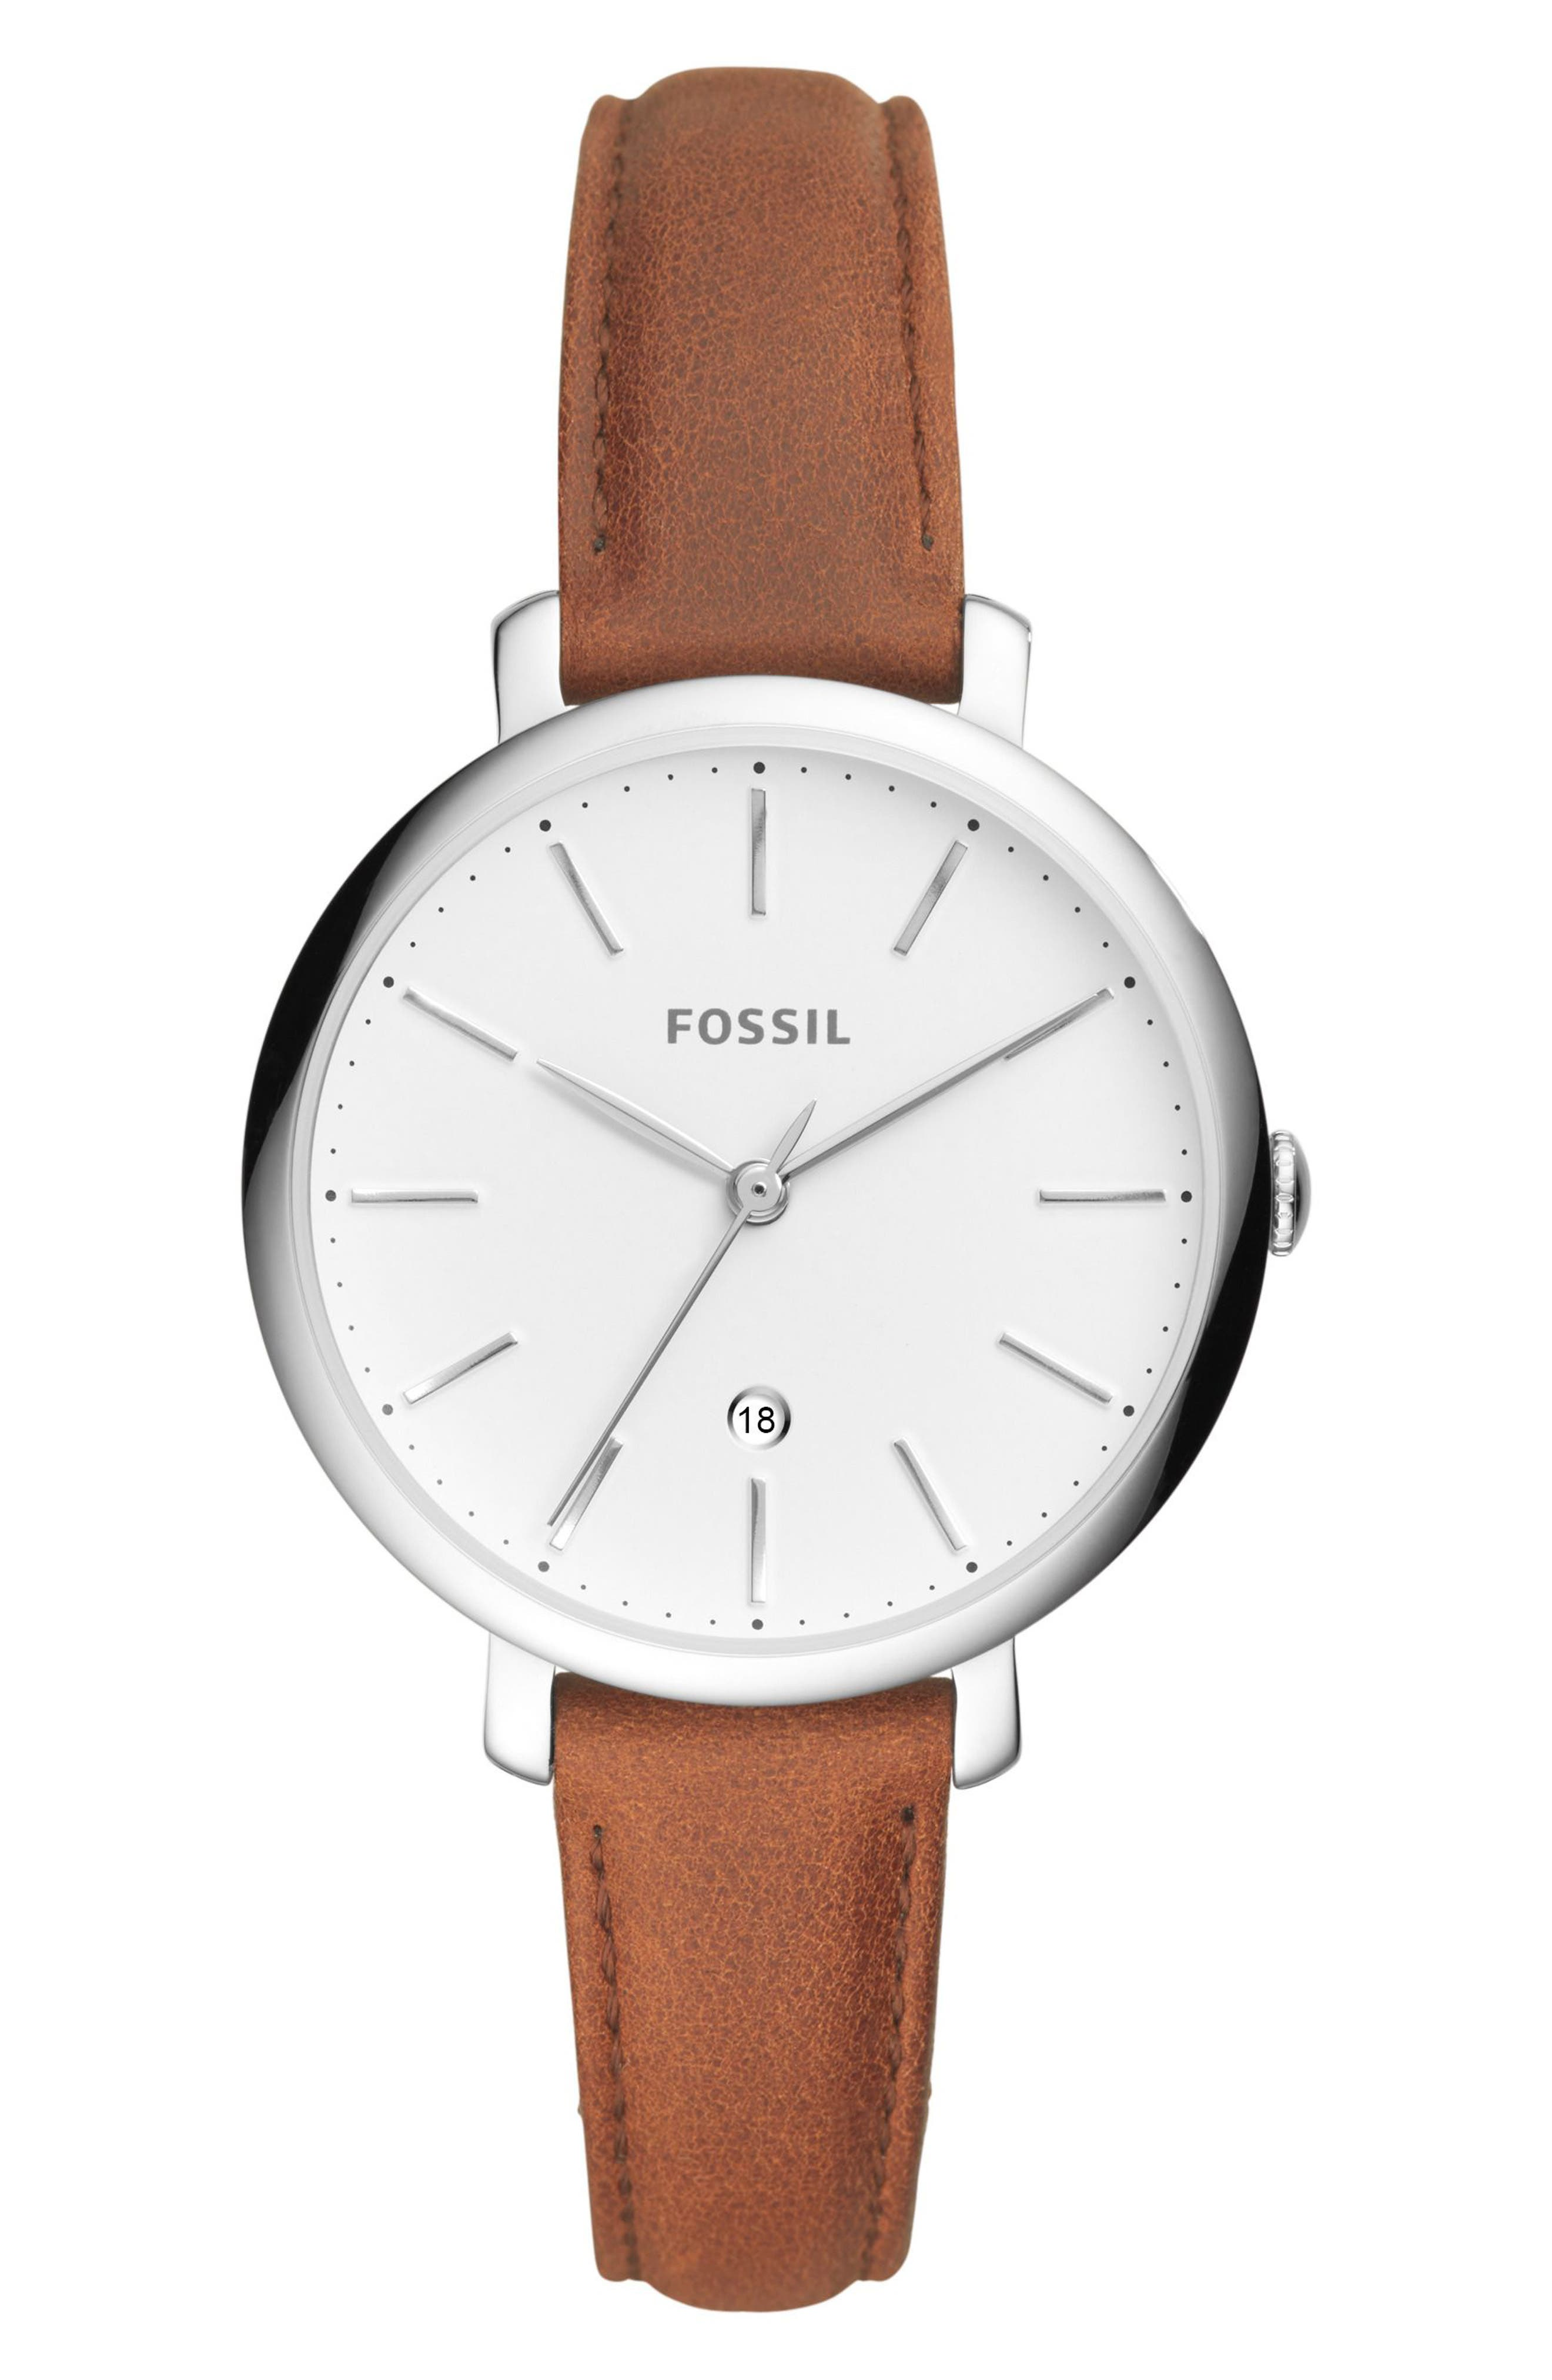 FOSSIL Jacqueline Leather Strap Watch, 36mm, Main, color, BROWN/ WHITE/ SILVER